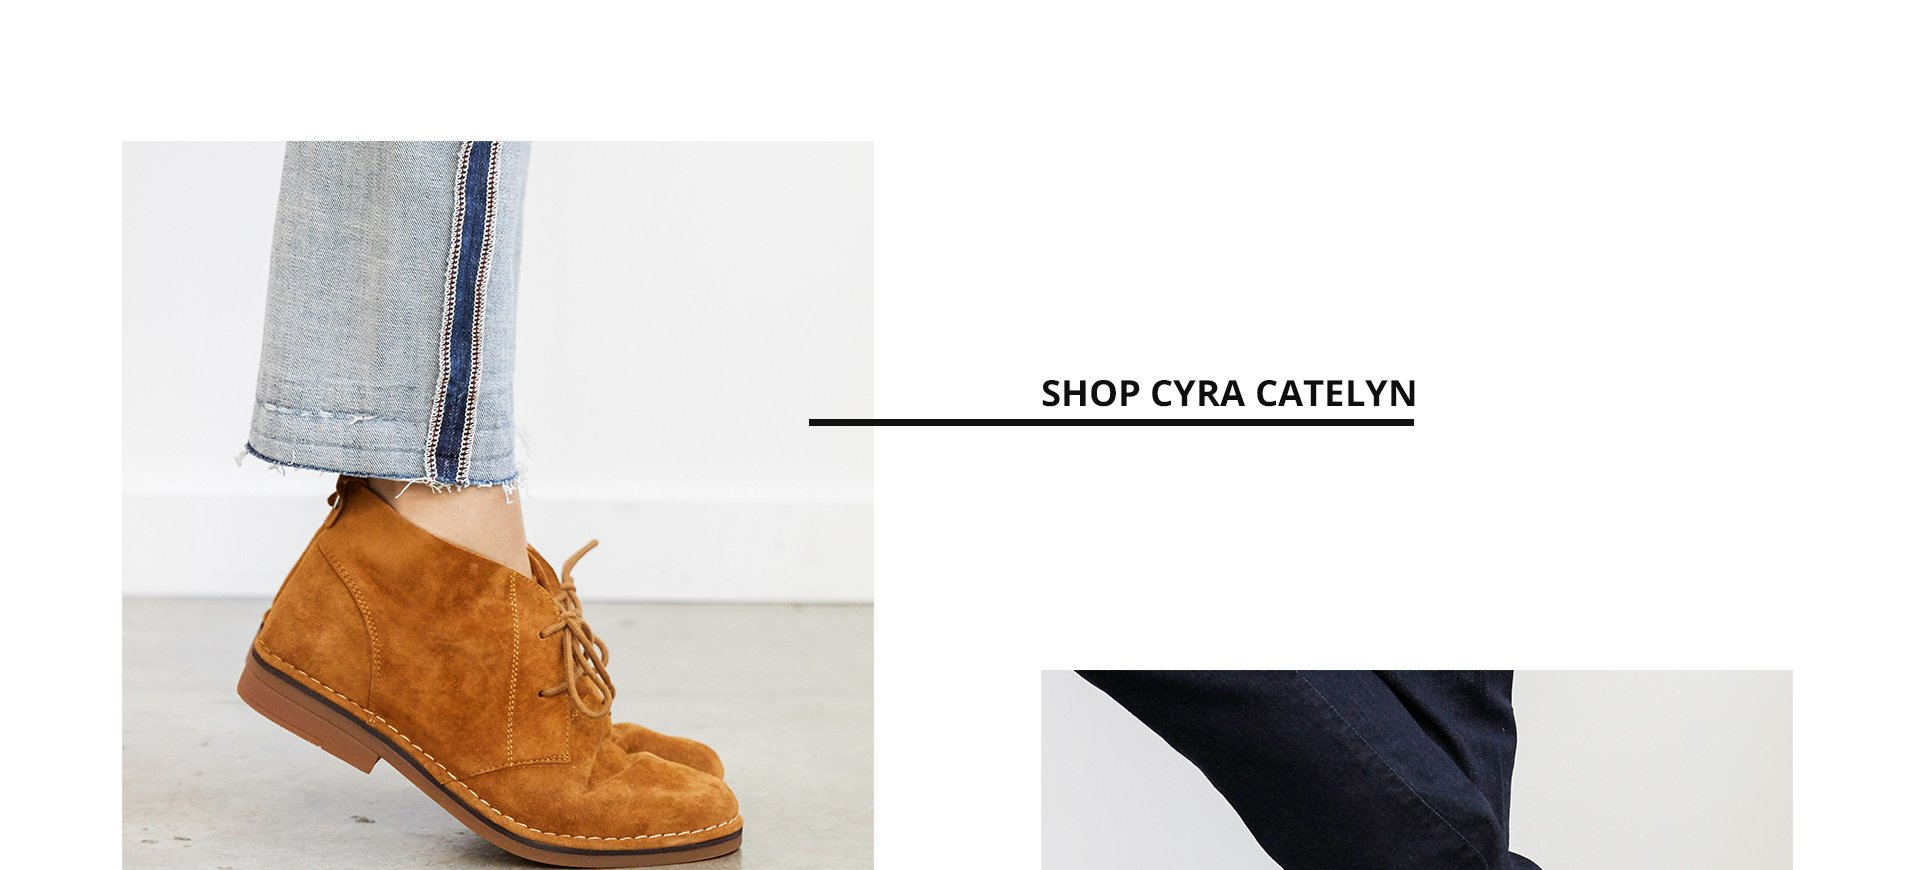 Shop Cyra Catelyn